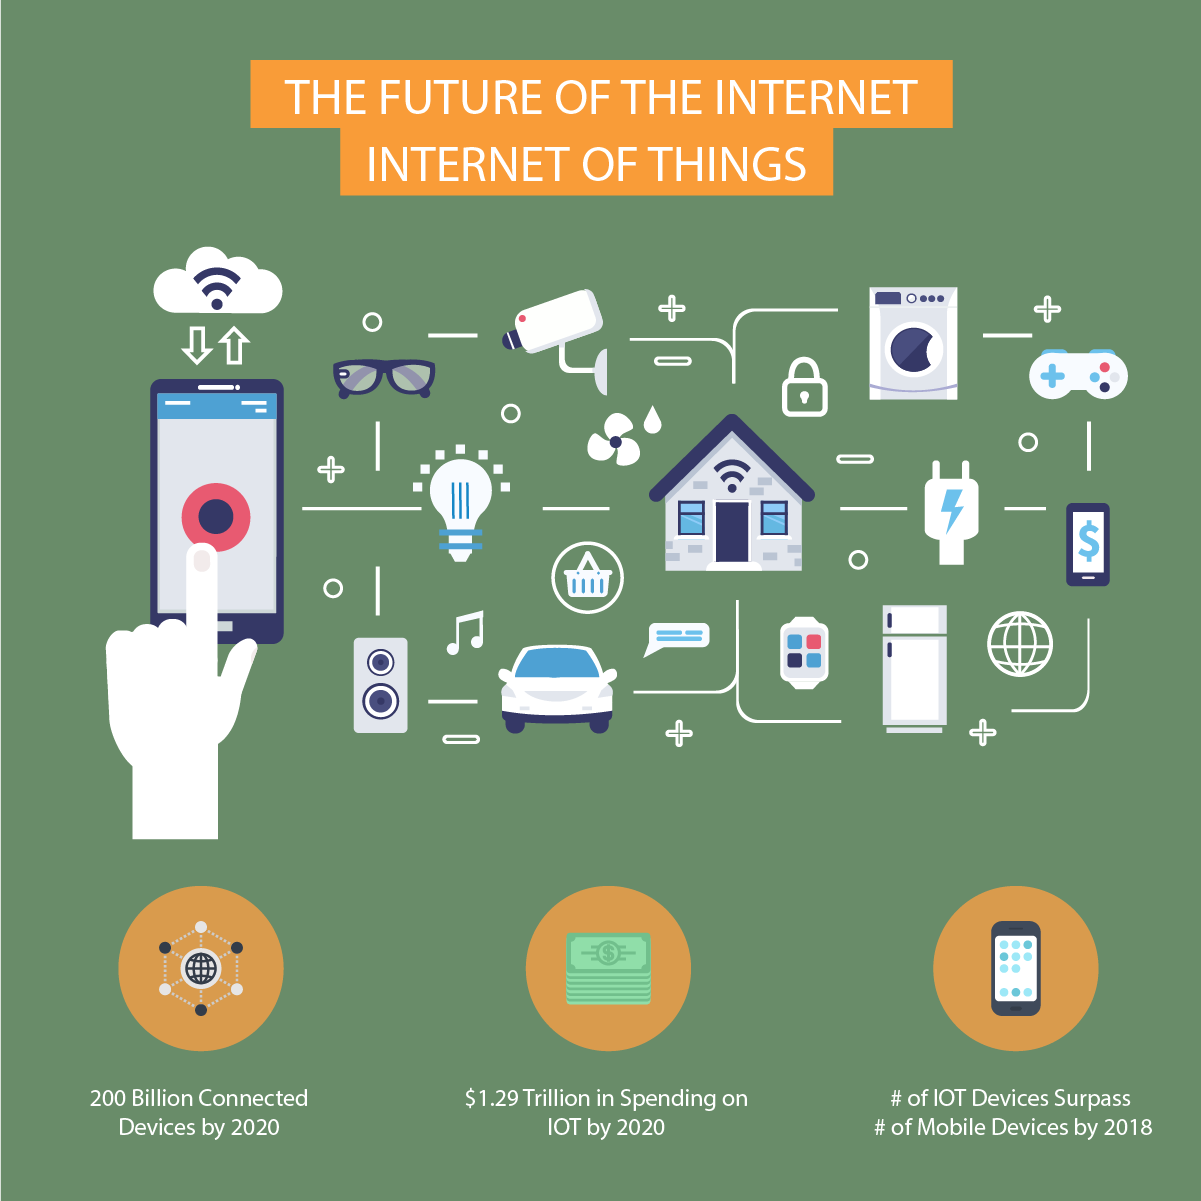 The Future Of The Internet - The Internet Of Things